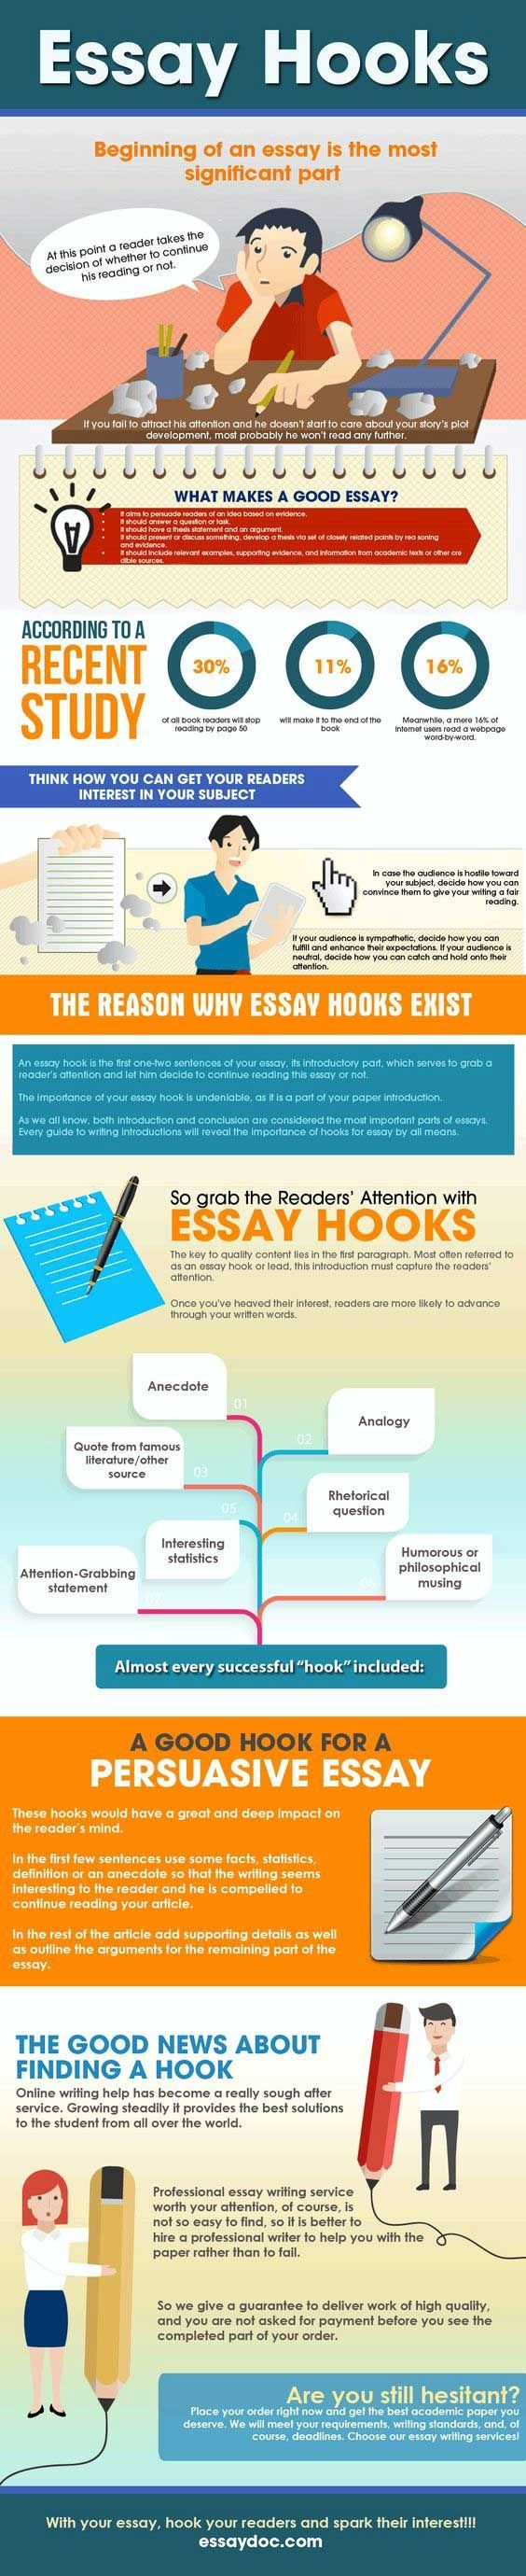 essay writing services offer by essay bureau is are very much essay writing services offer by essay bureau is are very much affordable that enables students acquire